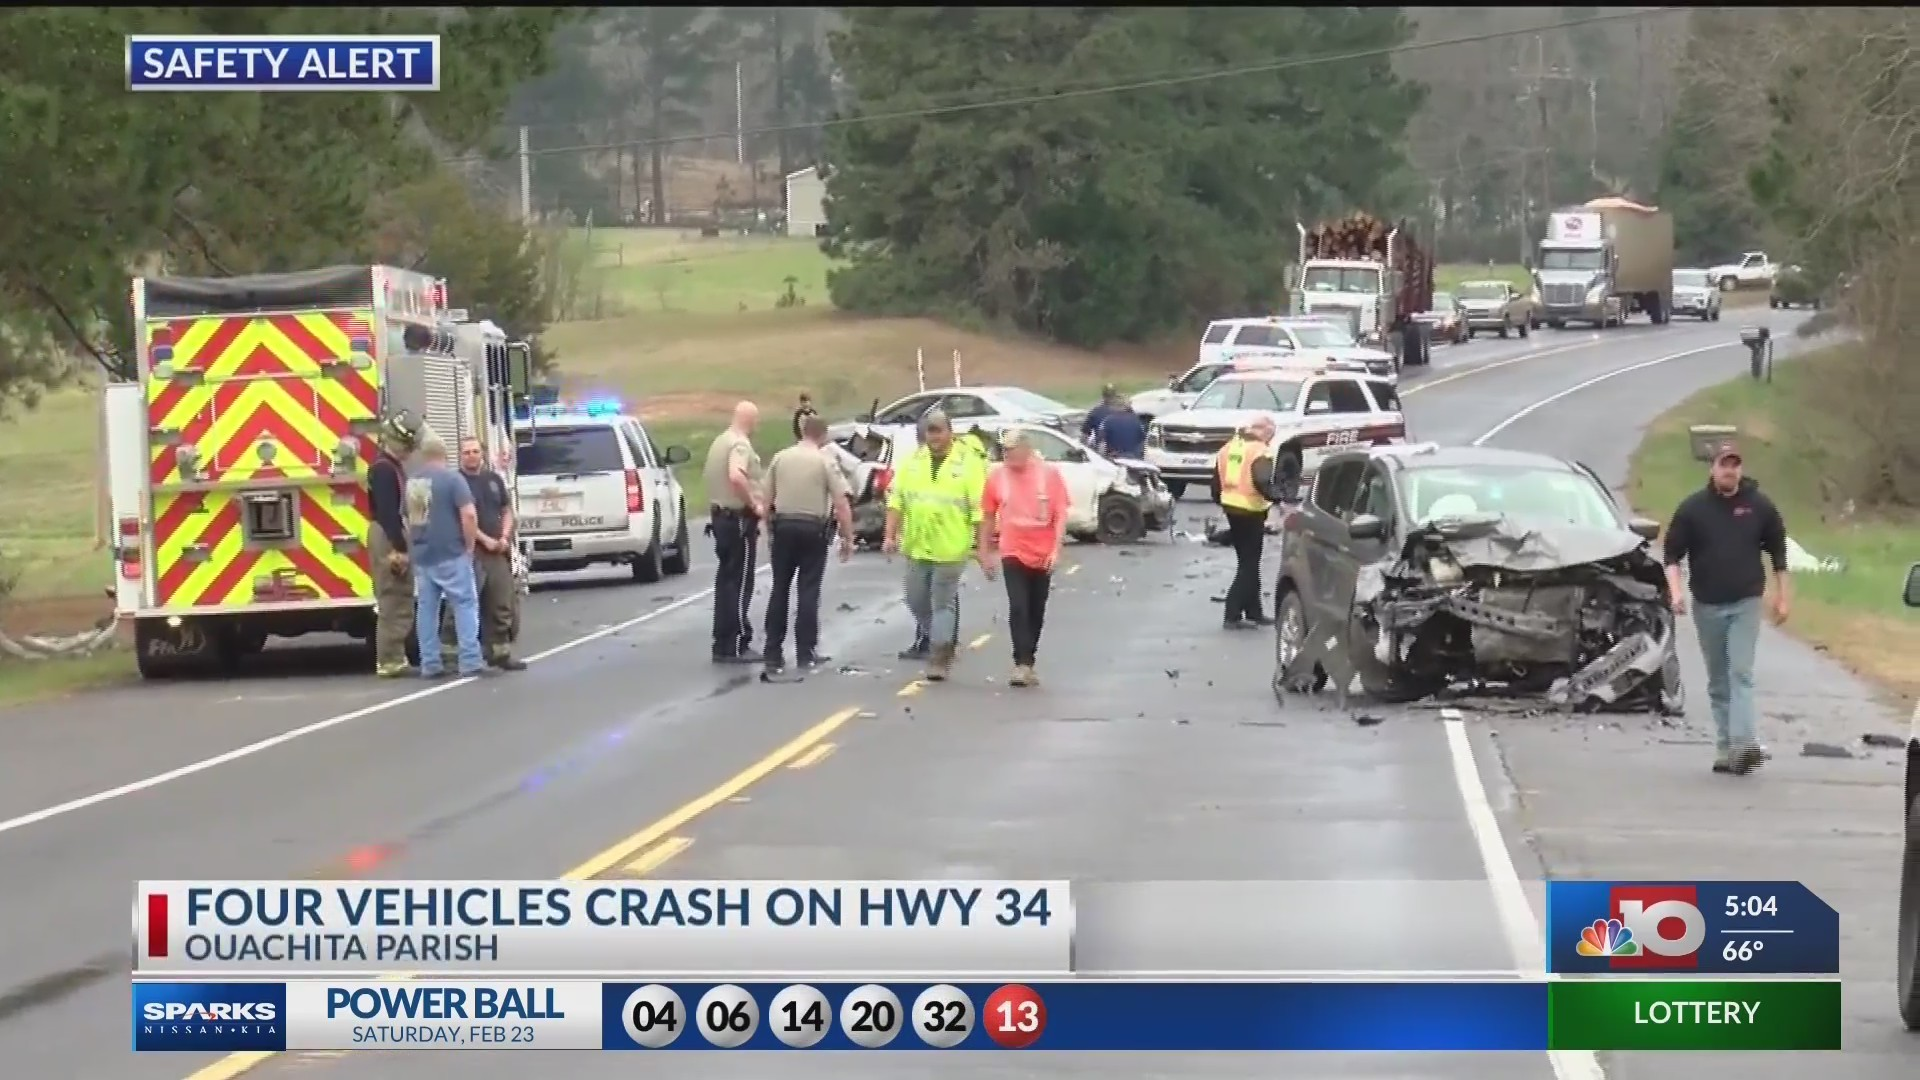 4 vehicles involved in accident on Hwy 34 this afternoon